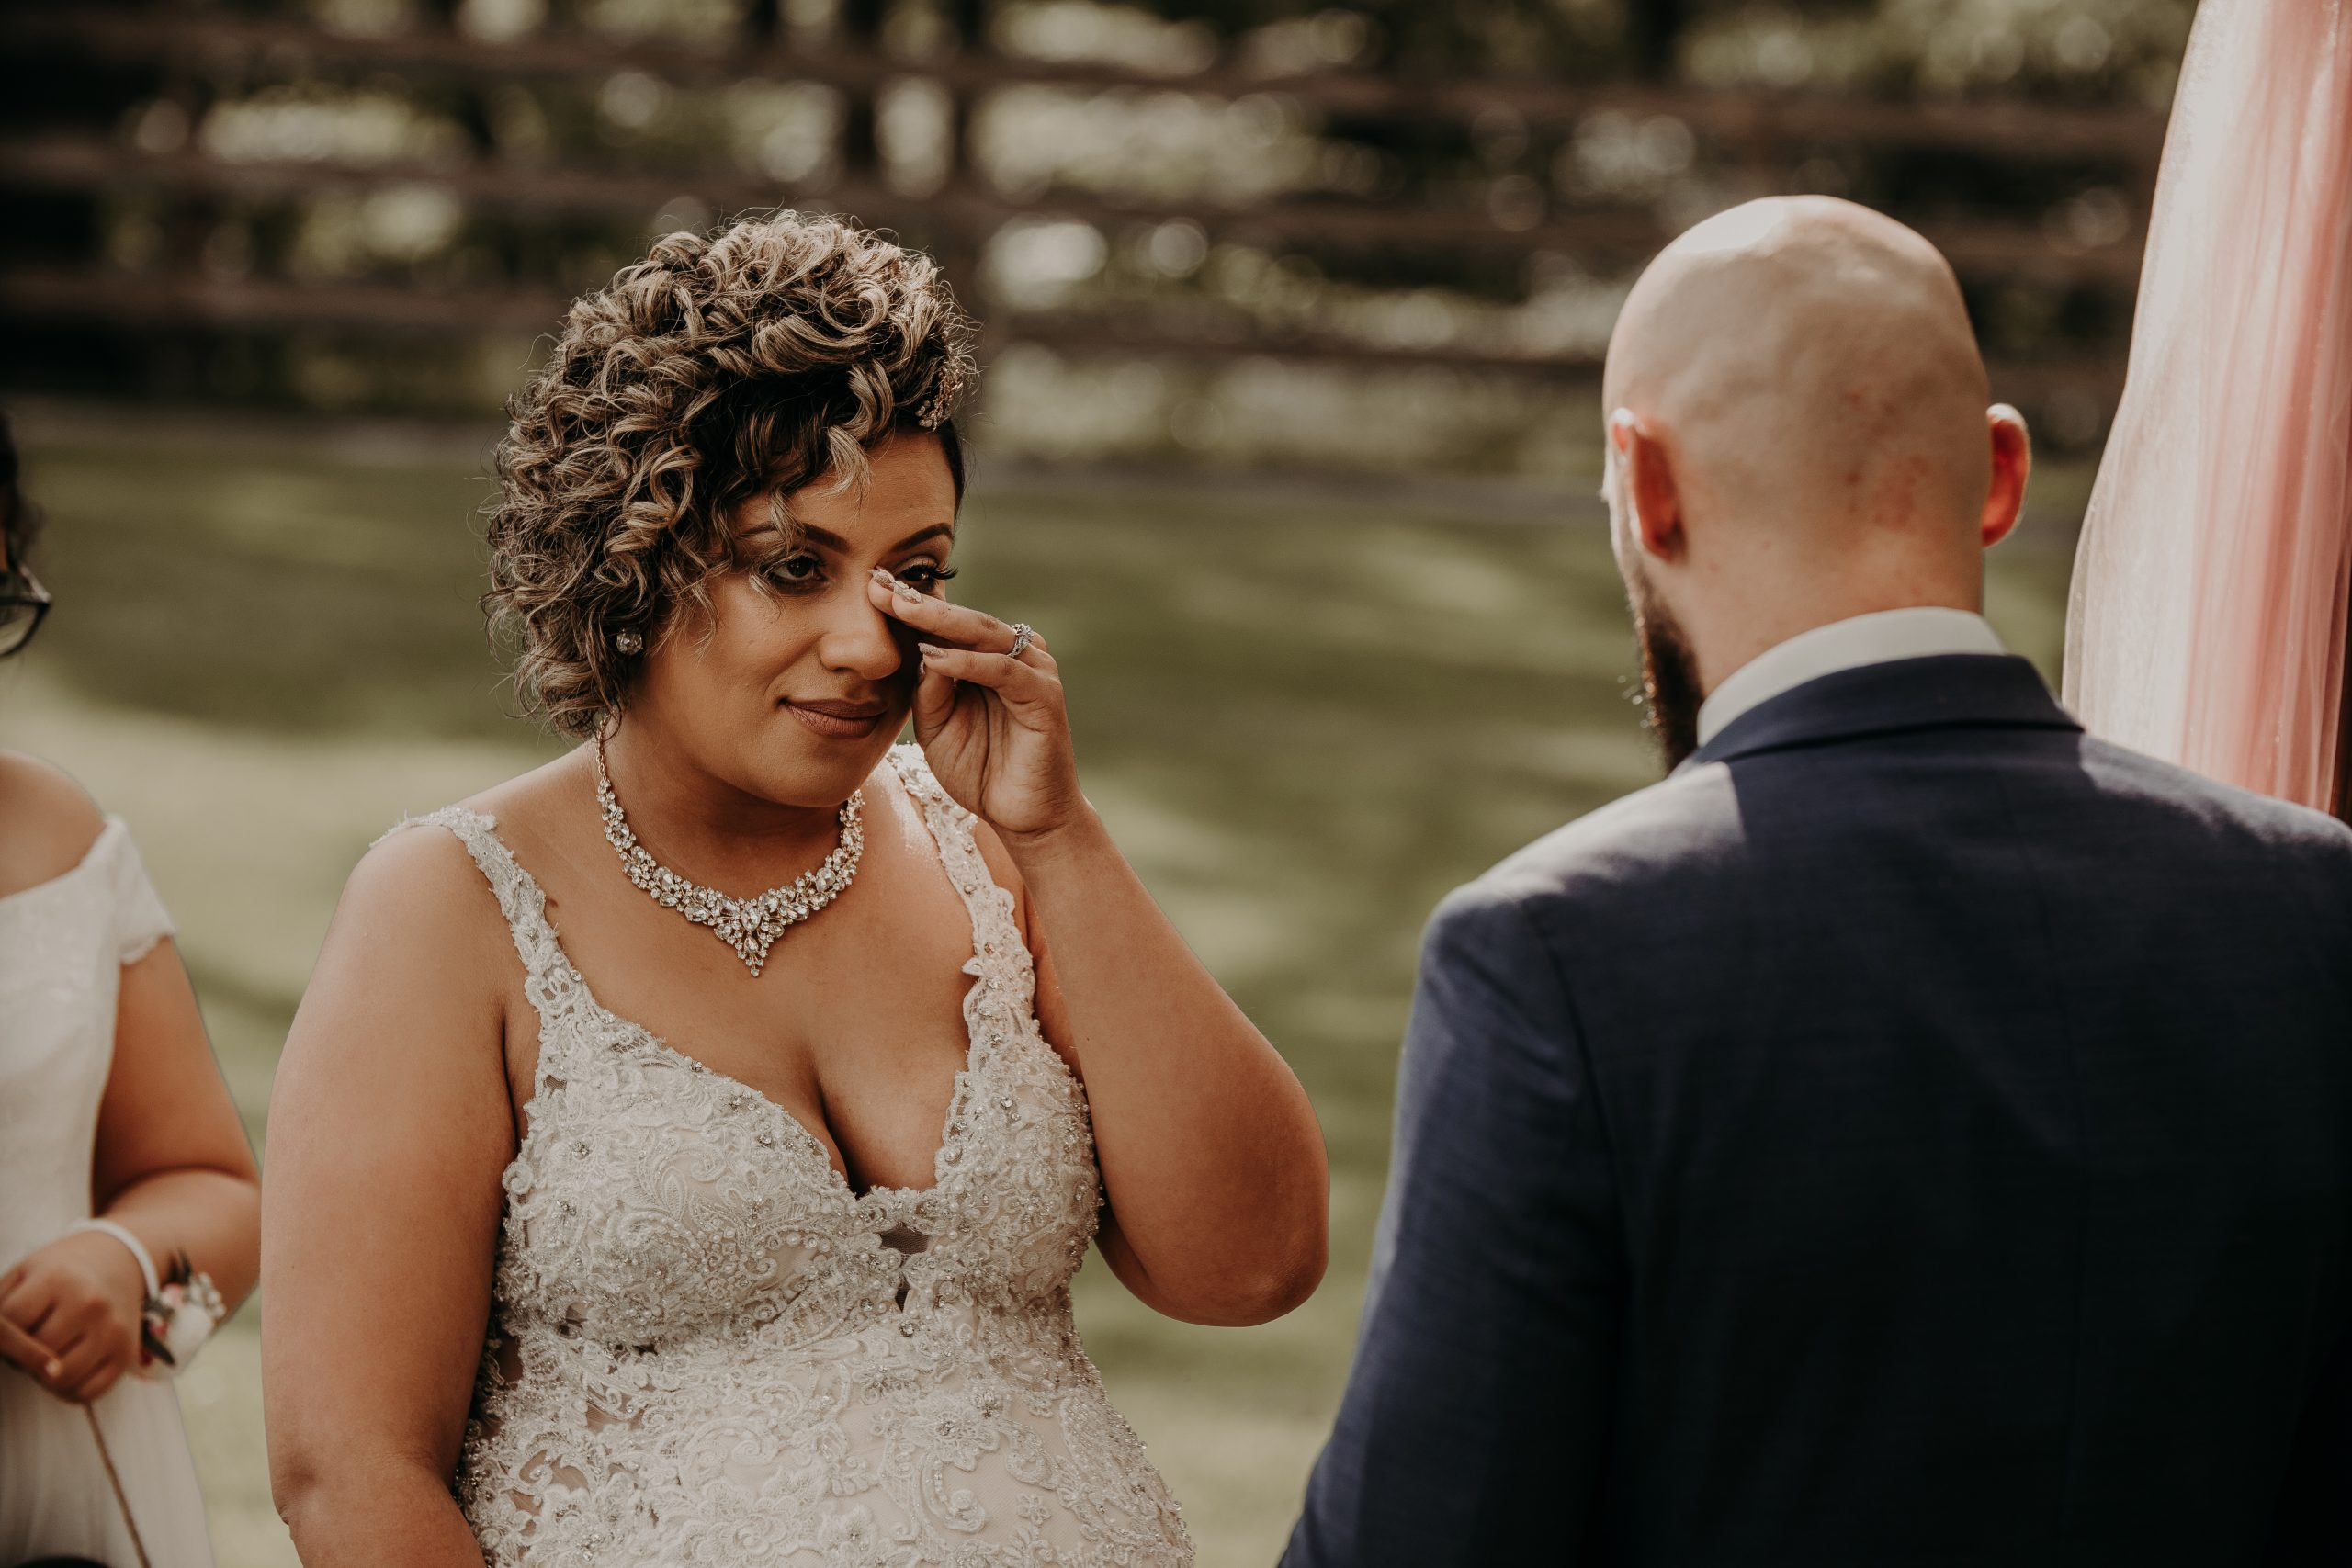 rICHARD READS HIS VOWS TO HIS NEW WIFE. Christine and Richard wed on the Chestnut Hill Villa grounds on May of 2019. This organic ethereal styled wedding was captured by Garnet Dahlia Photography and featured on Dream Weddings.